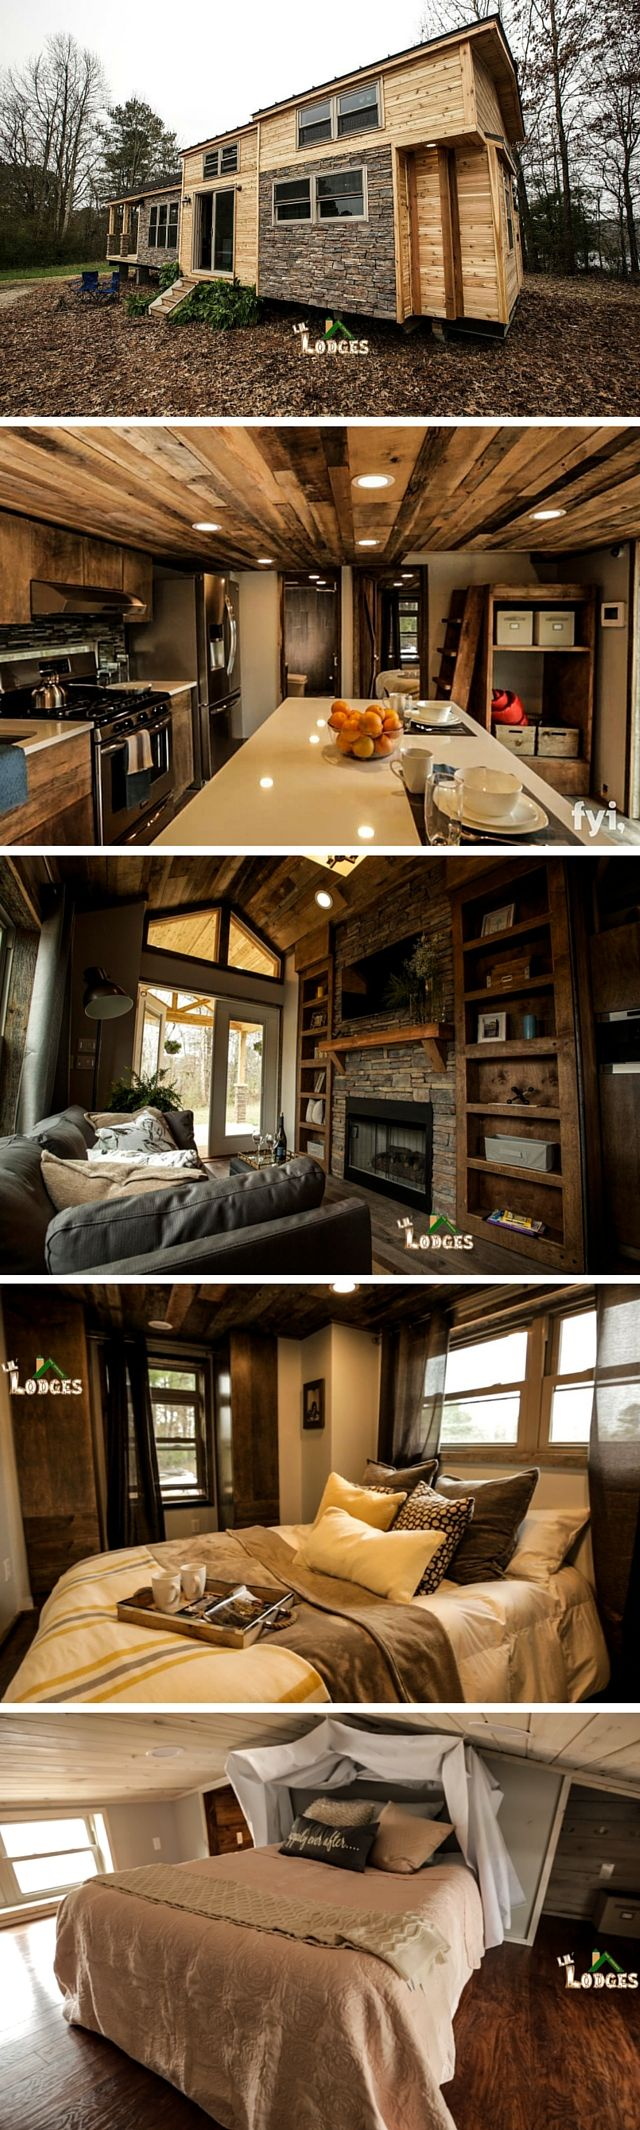 why tiny house living is so relaxing tiny house nation tiny